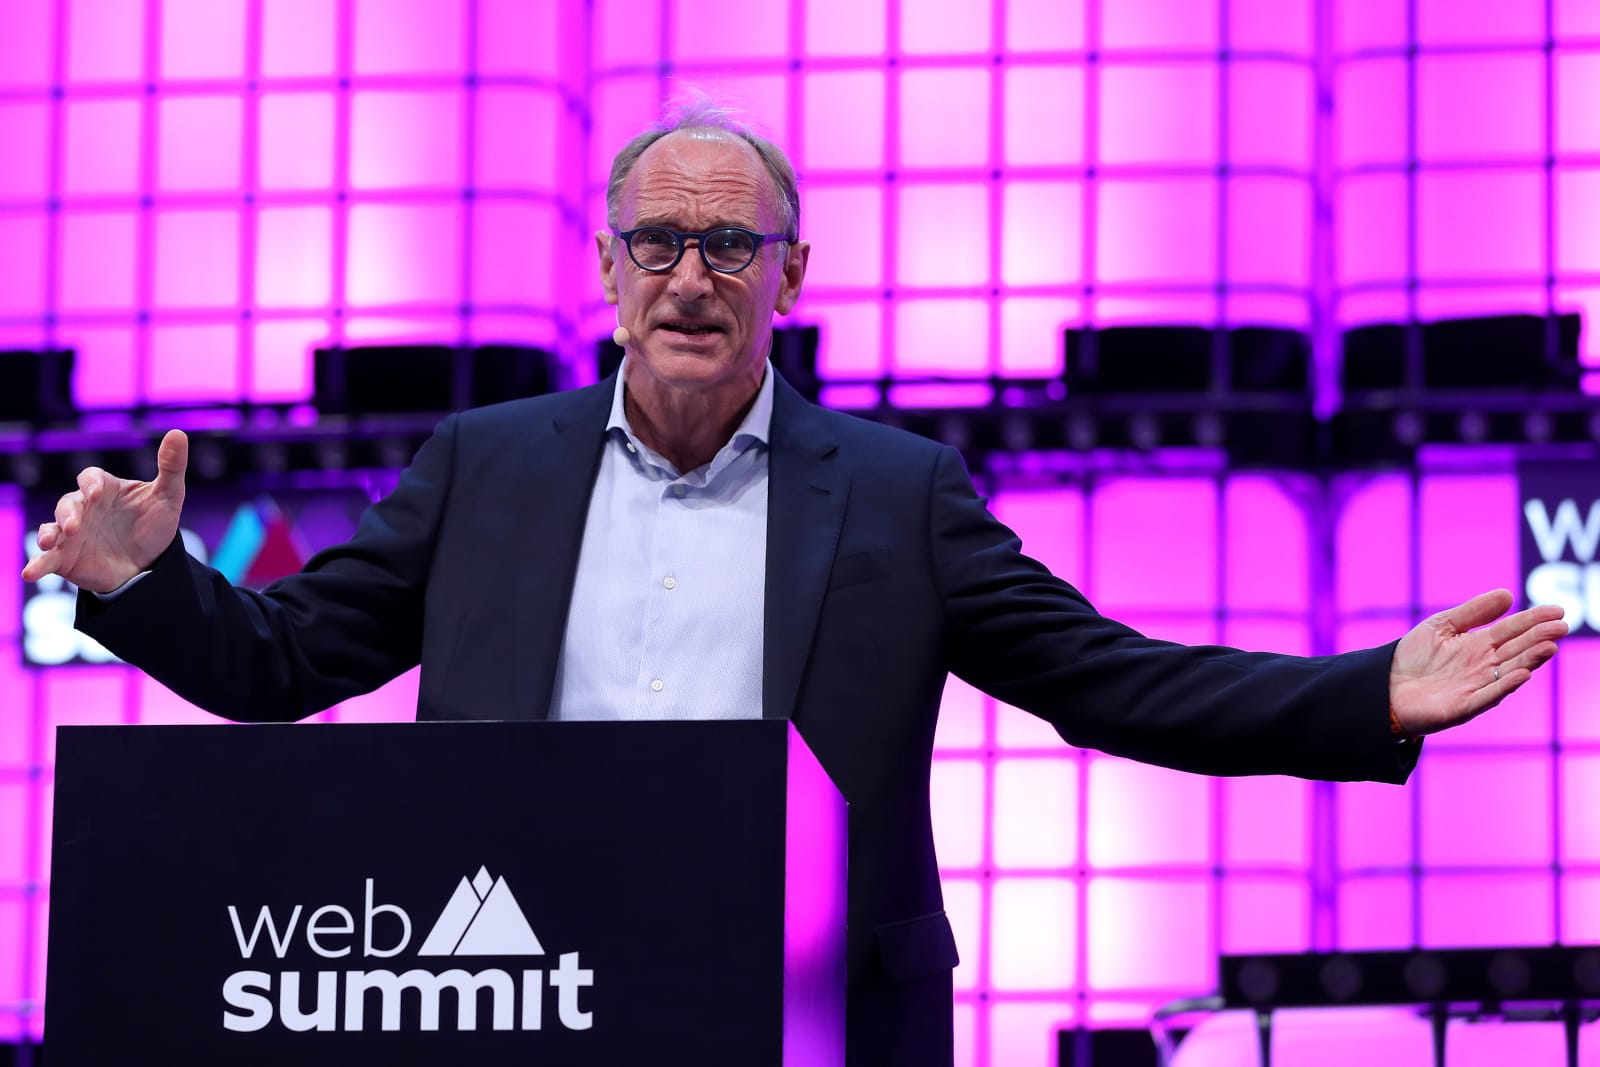 Portugal: Web Summit 2018 - Day 1